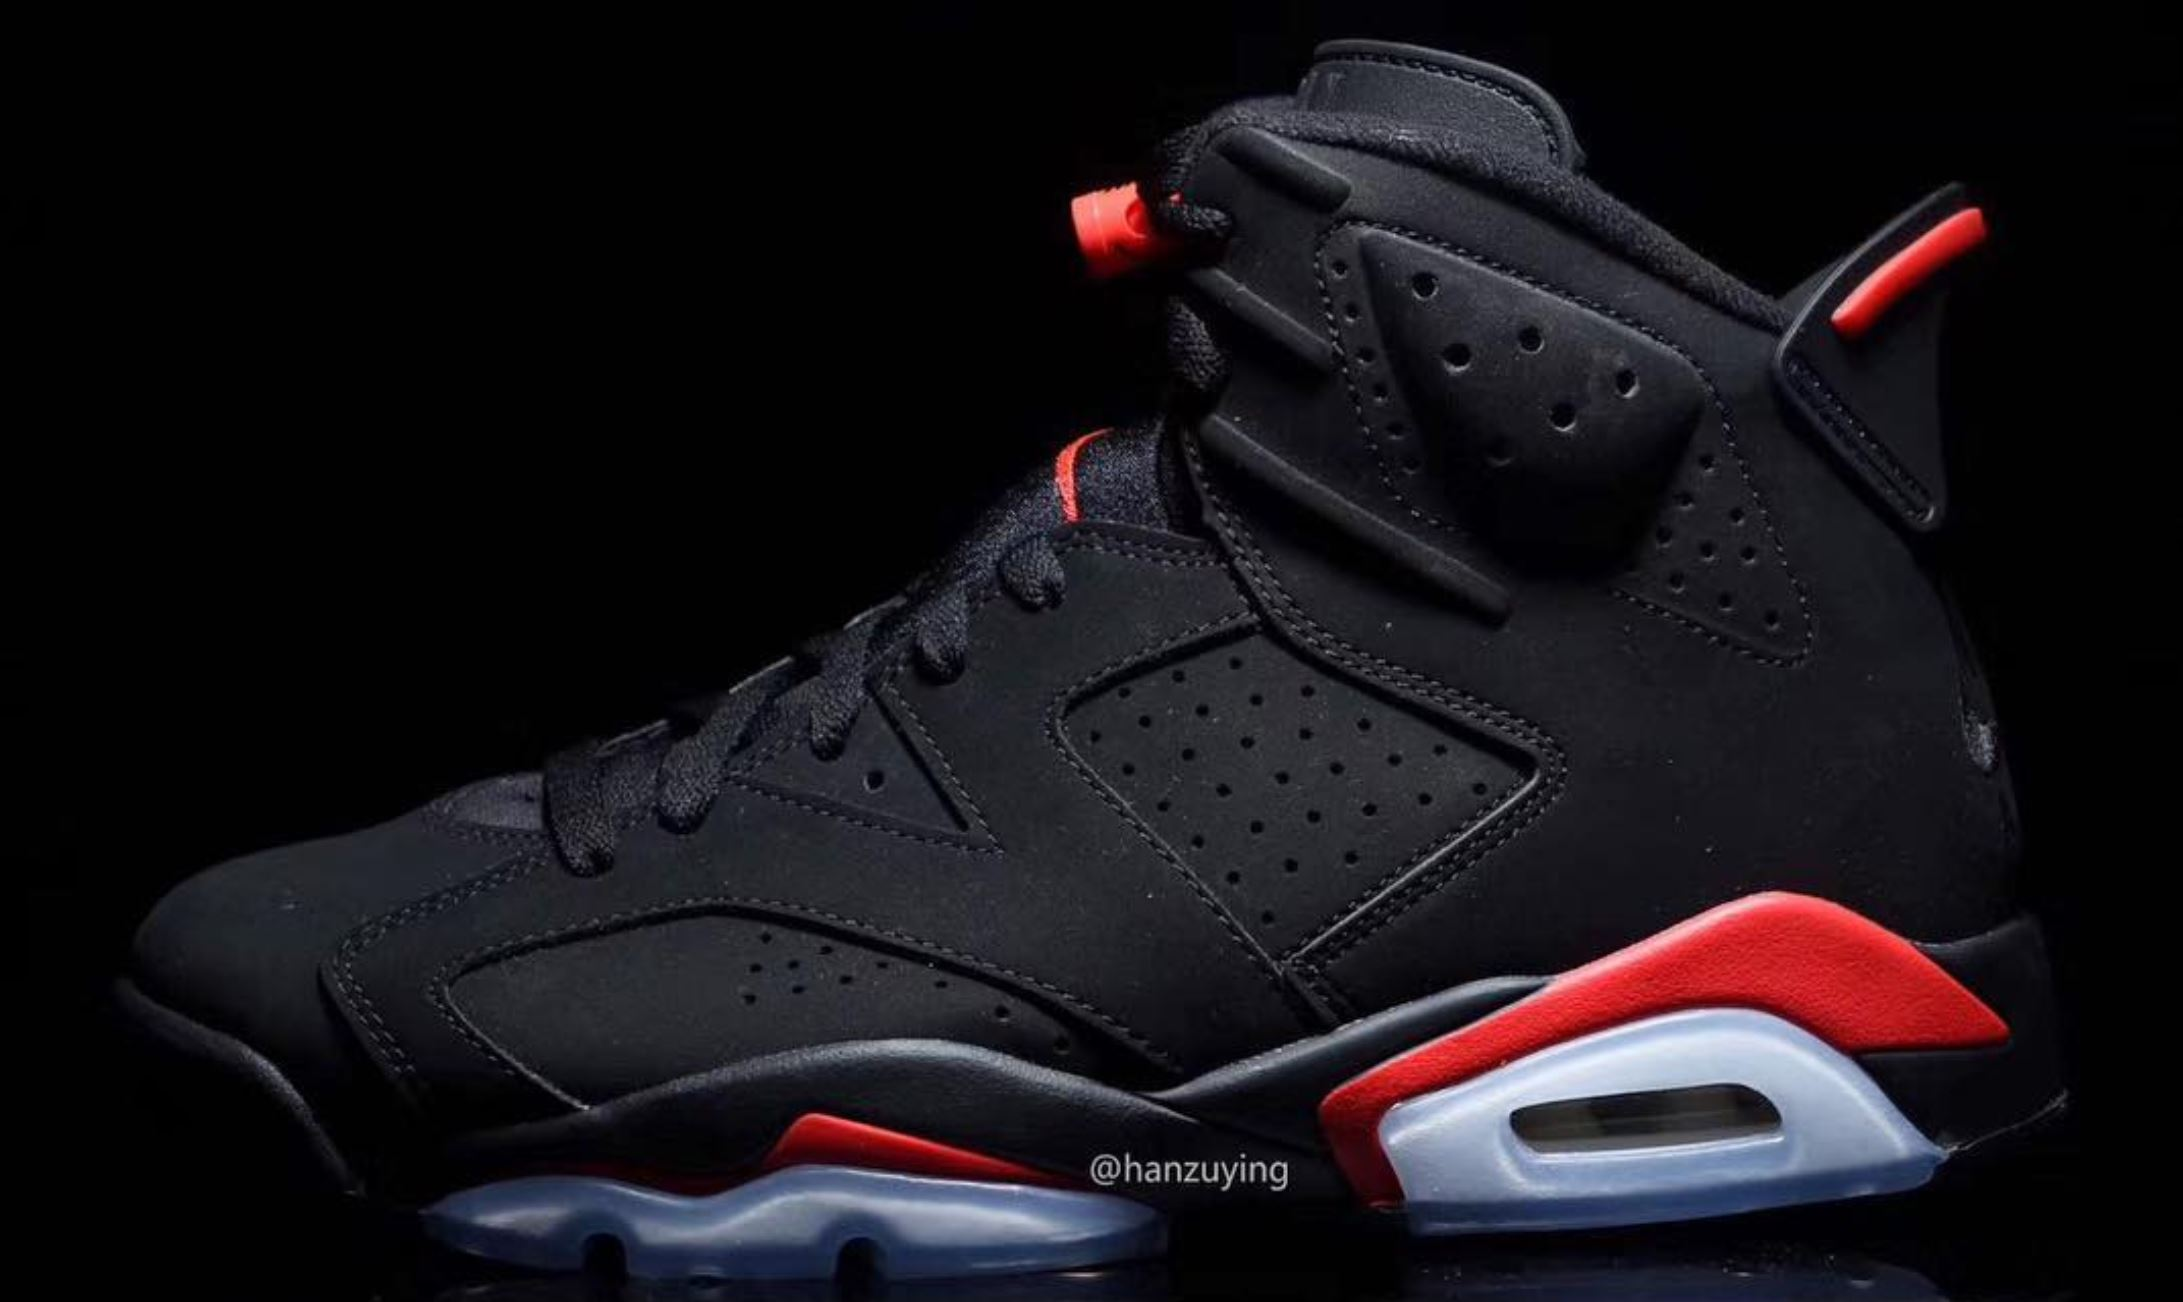 separation shoes 04db8 962aa The Air Jordan 6 'Black Infrared' to Release in February for ...